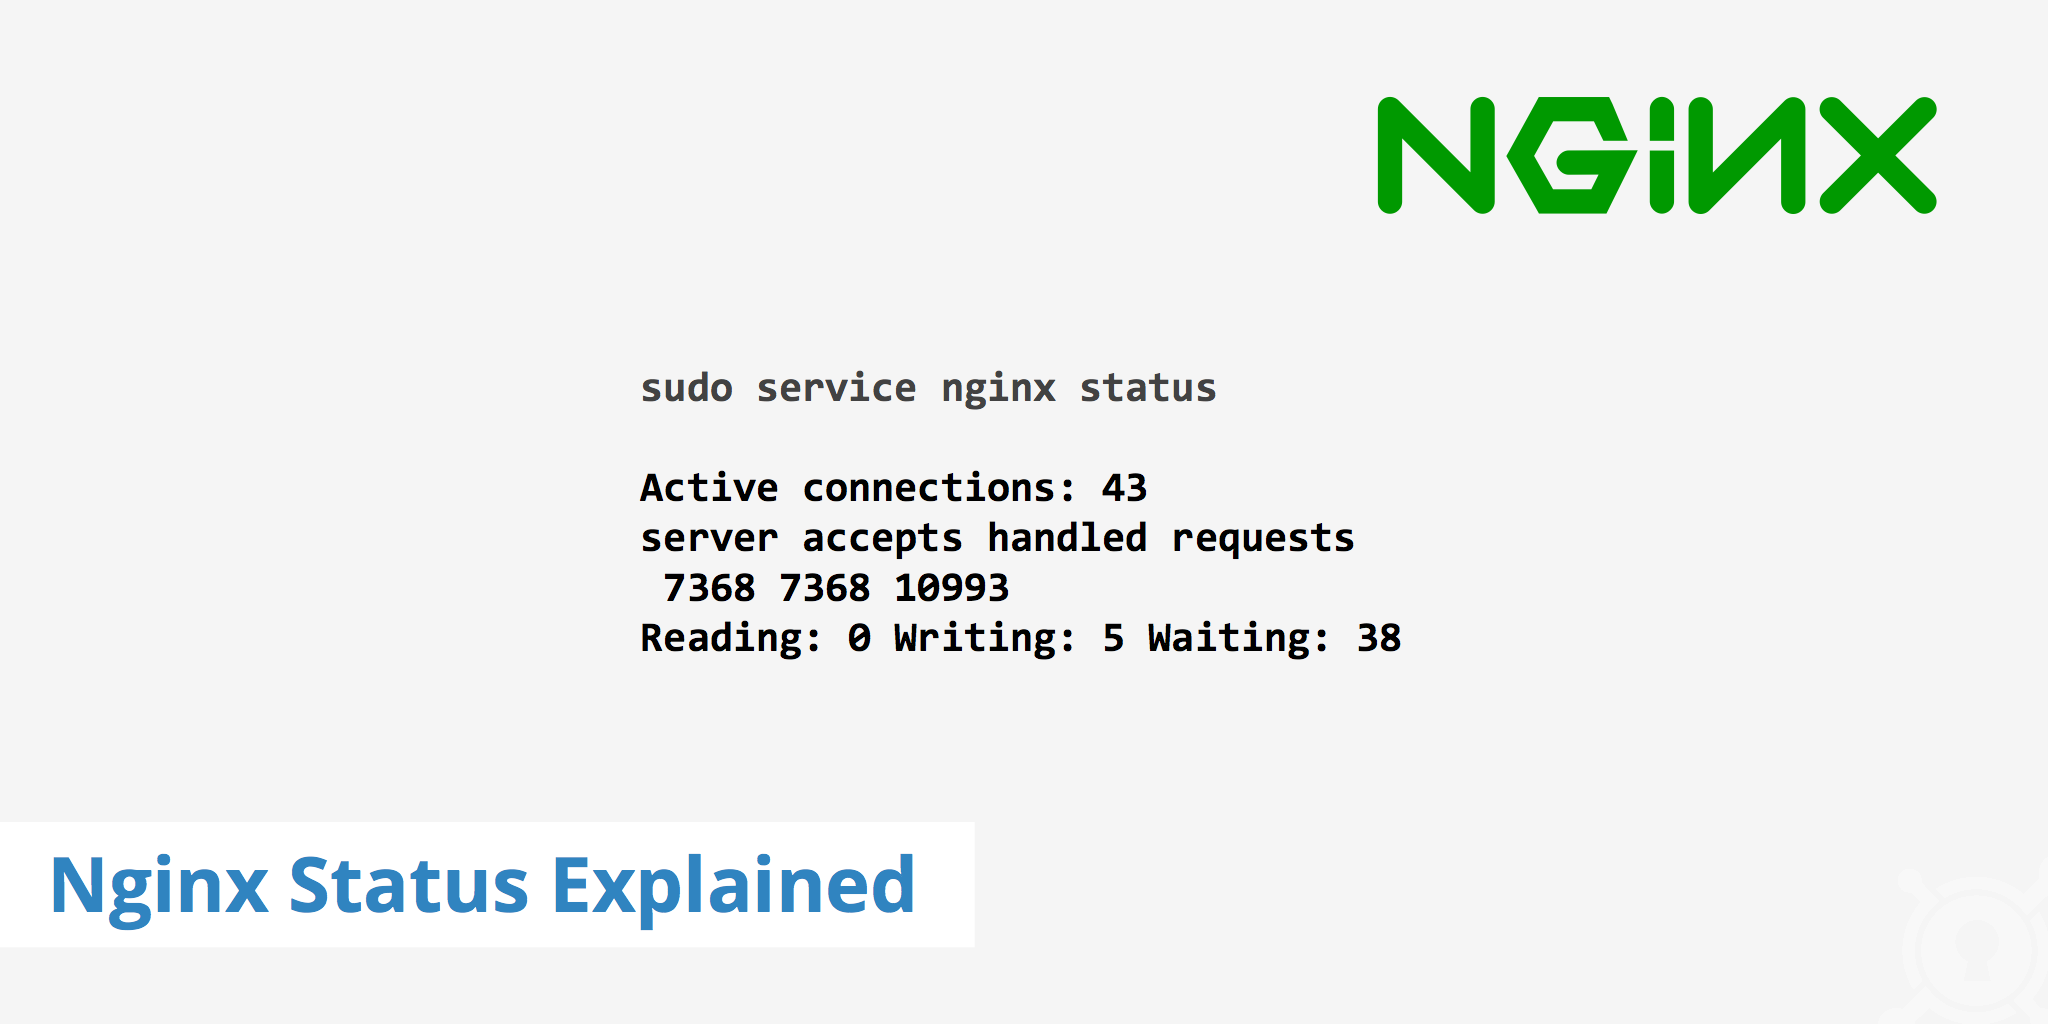 Nginx Status Explained